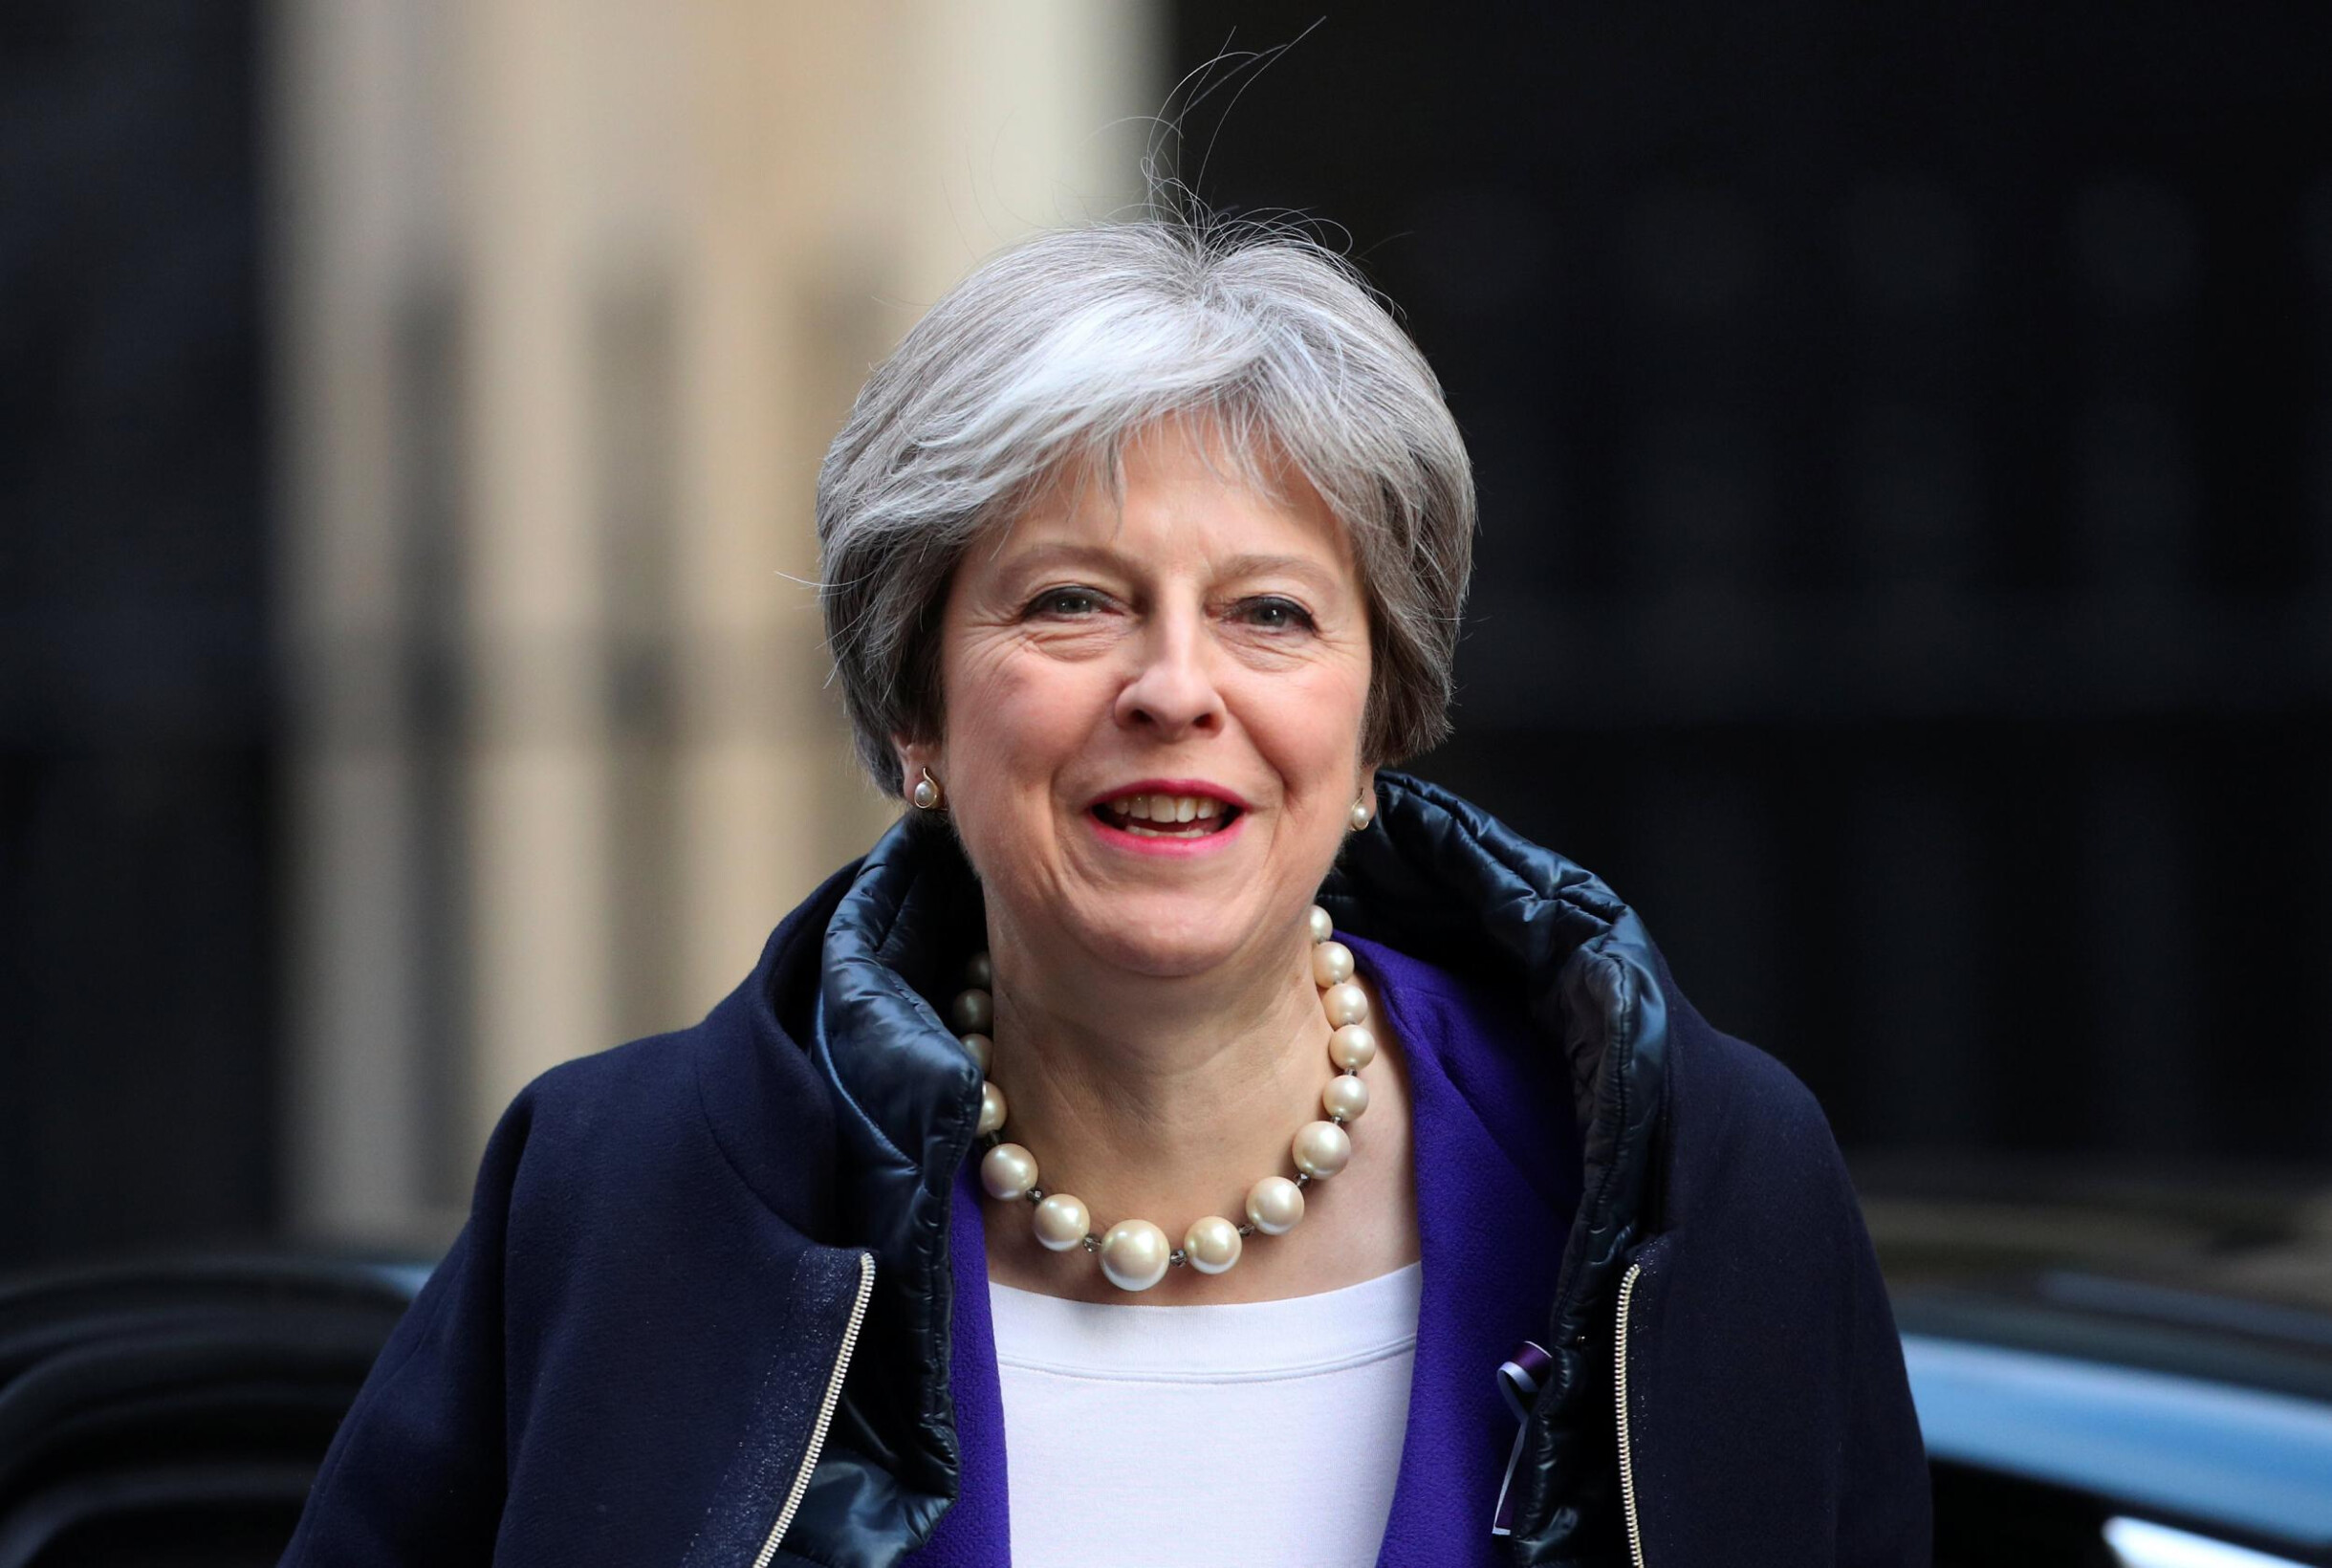 theresa-May-as-10-mulheres-mais-influentes-do-mundo